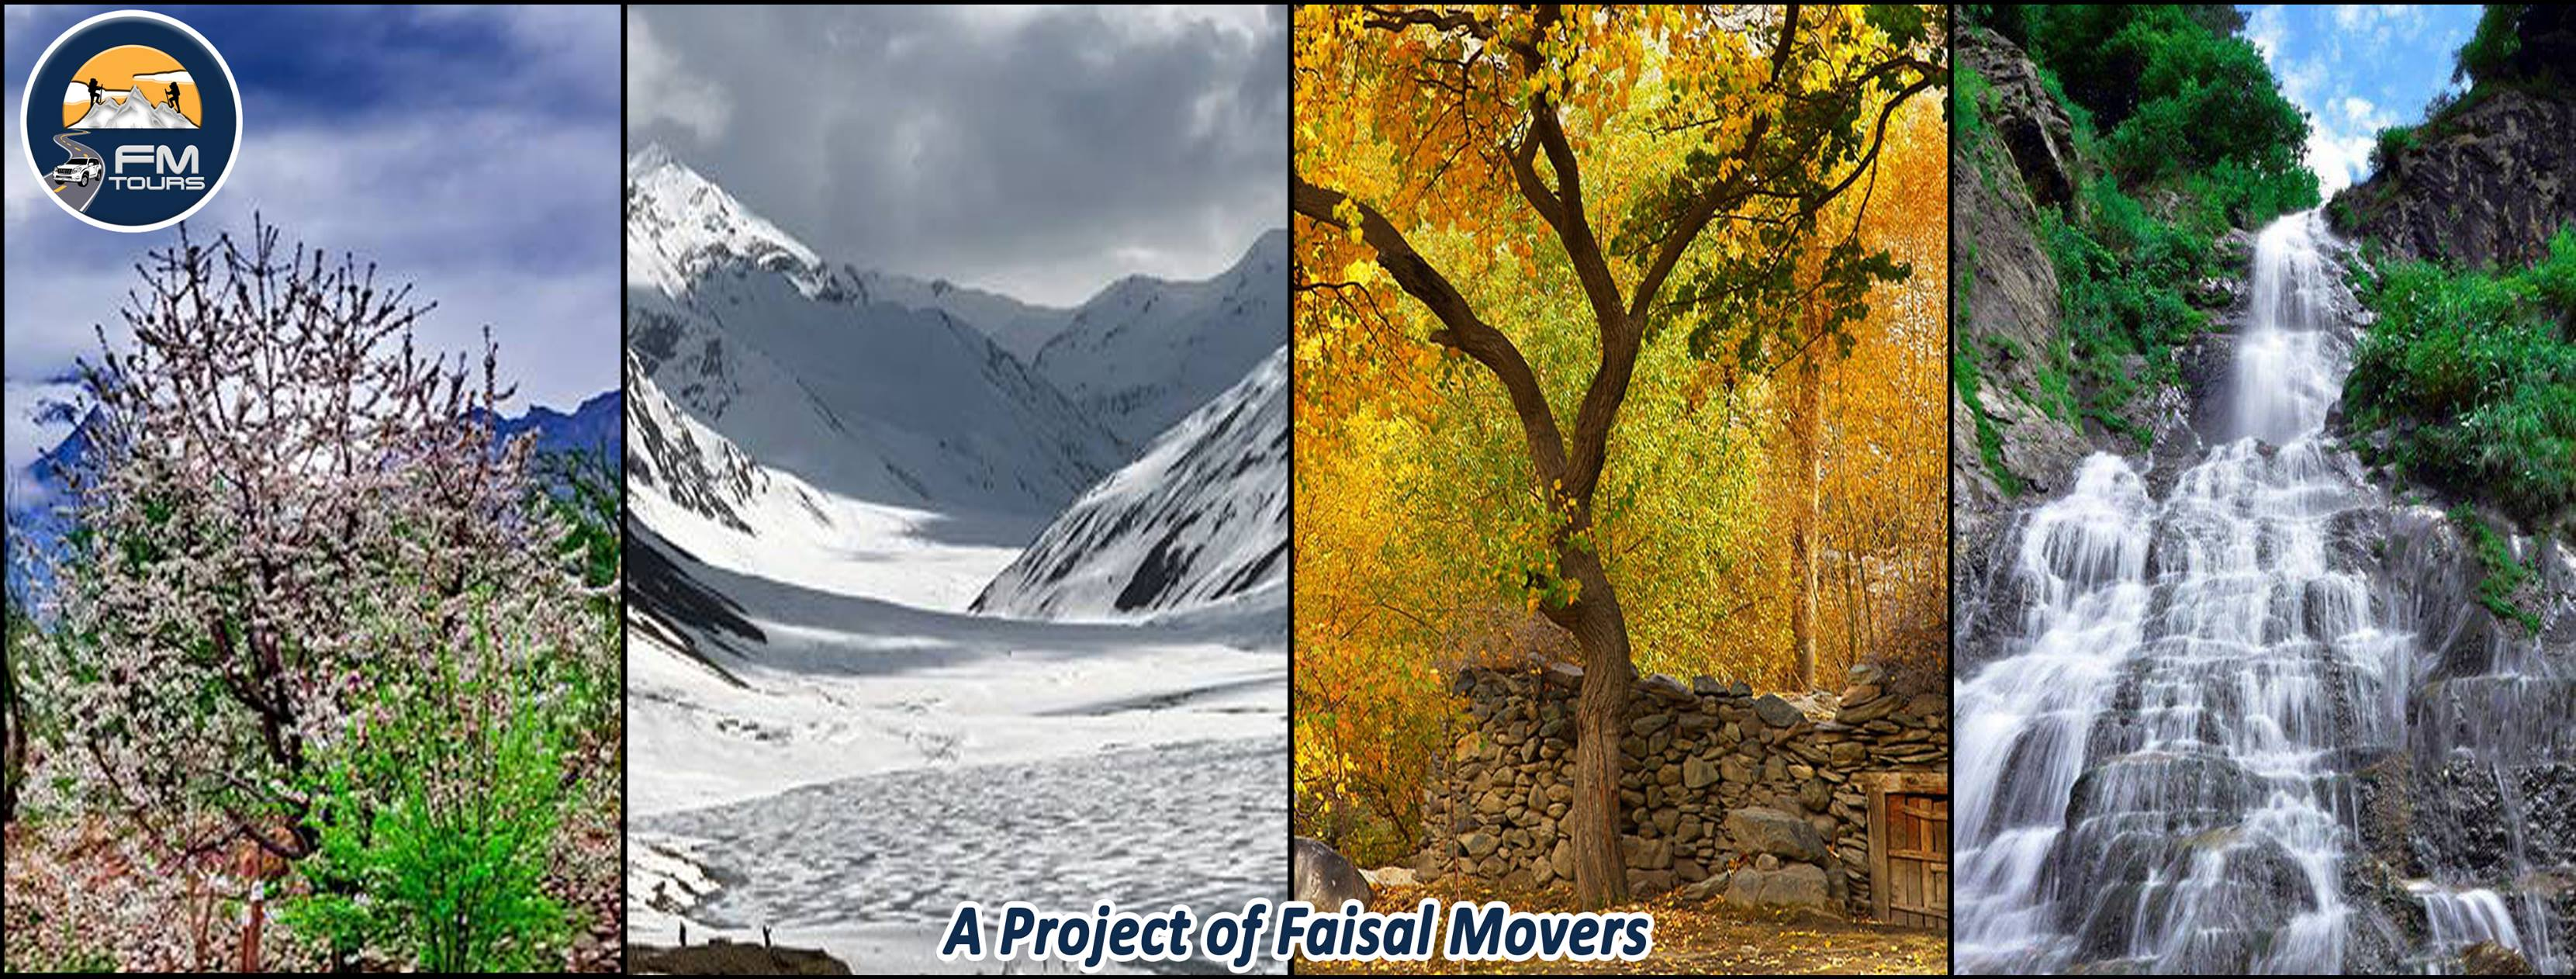 Faisal Movers Tours